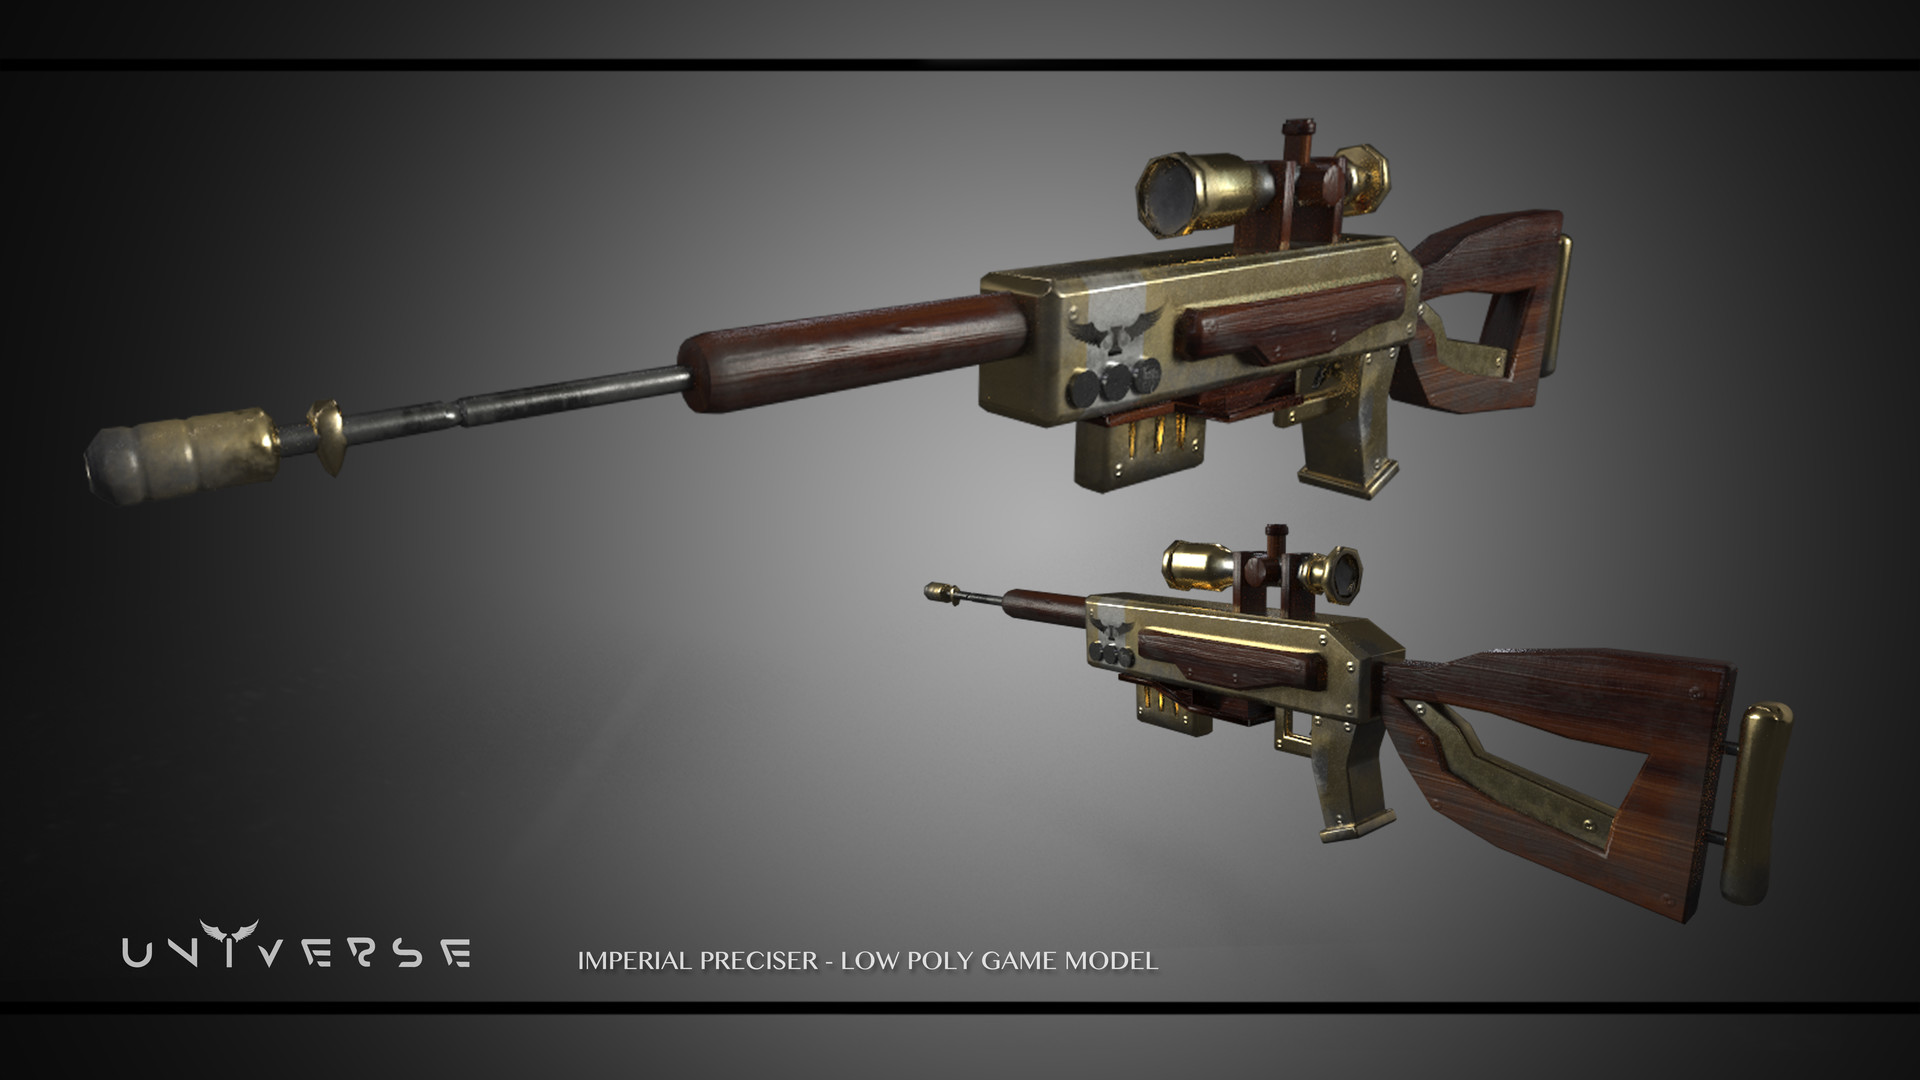 ArtStation ConceptArt Guns low poly